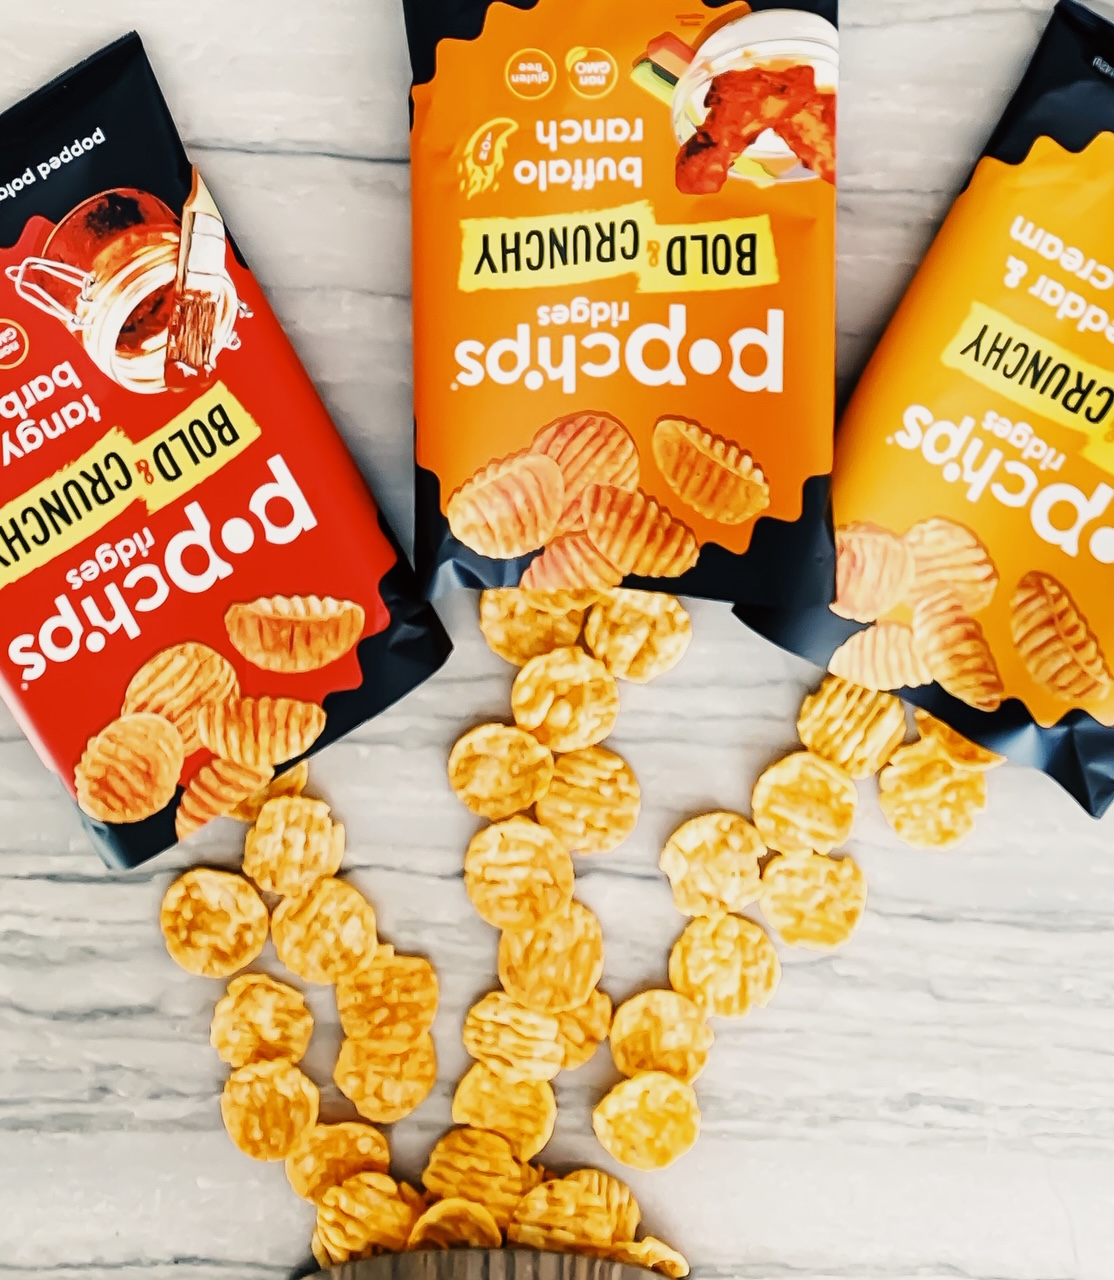 How Do You Plan To Bring Flavor To Your Super Bowl Celebration This Year? Add Bold And Crunchy Flavor To The Big Game With Buffalo Ranch, Tangy Barbecue, and Cheddar & Sour Cream popchips Ridges! Super Bowl Snack Ideas. Appetizers for Super Bowl. #sponsored #popchips #snacks #super #bowl